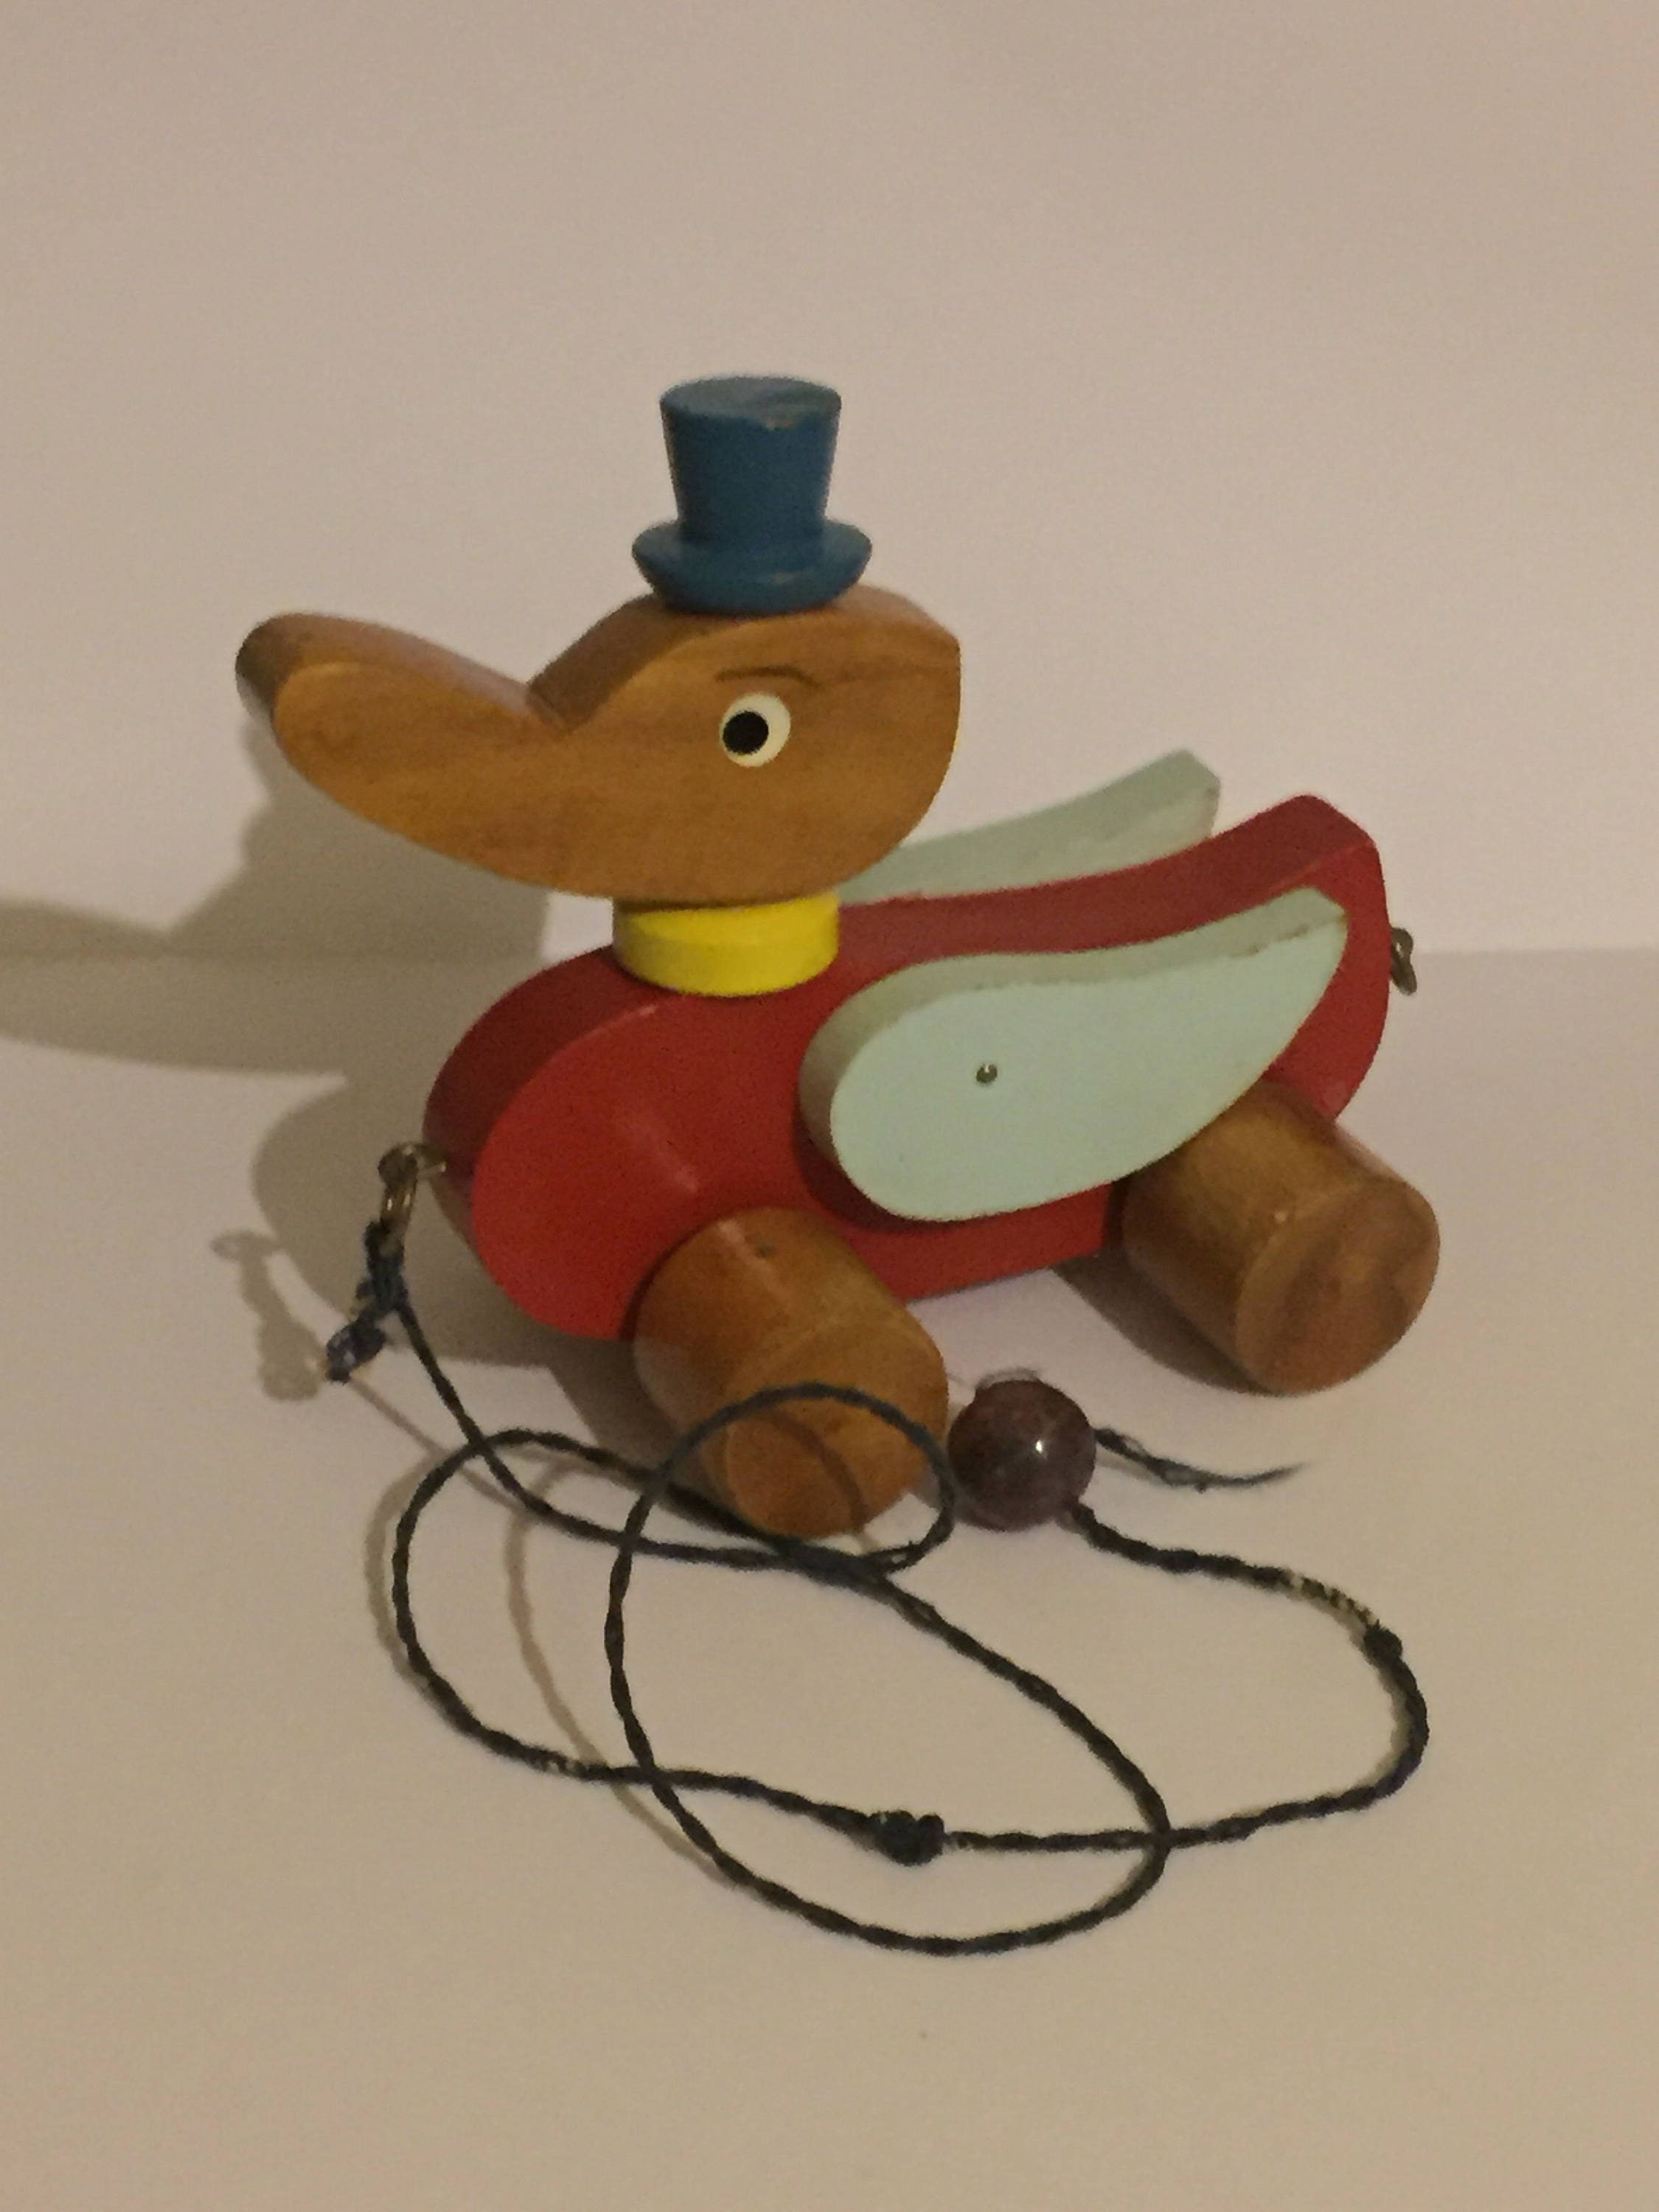 Vintage Wooden Pull Along Duck 1960s Retro Toy Duck In Top Hat